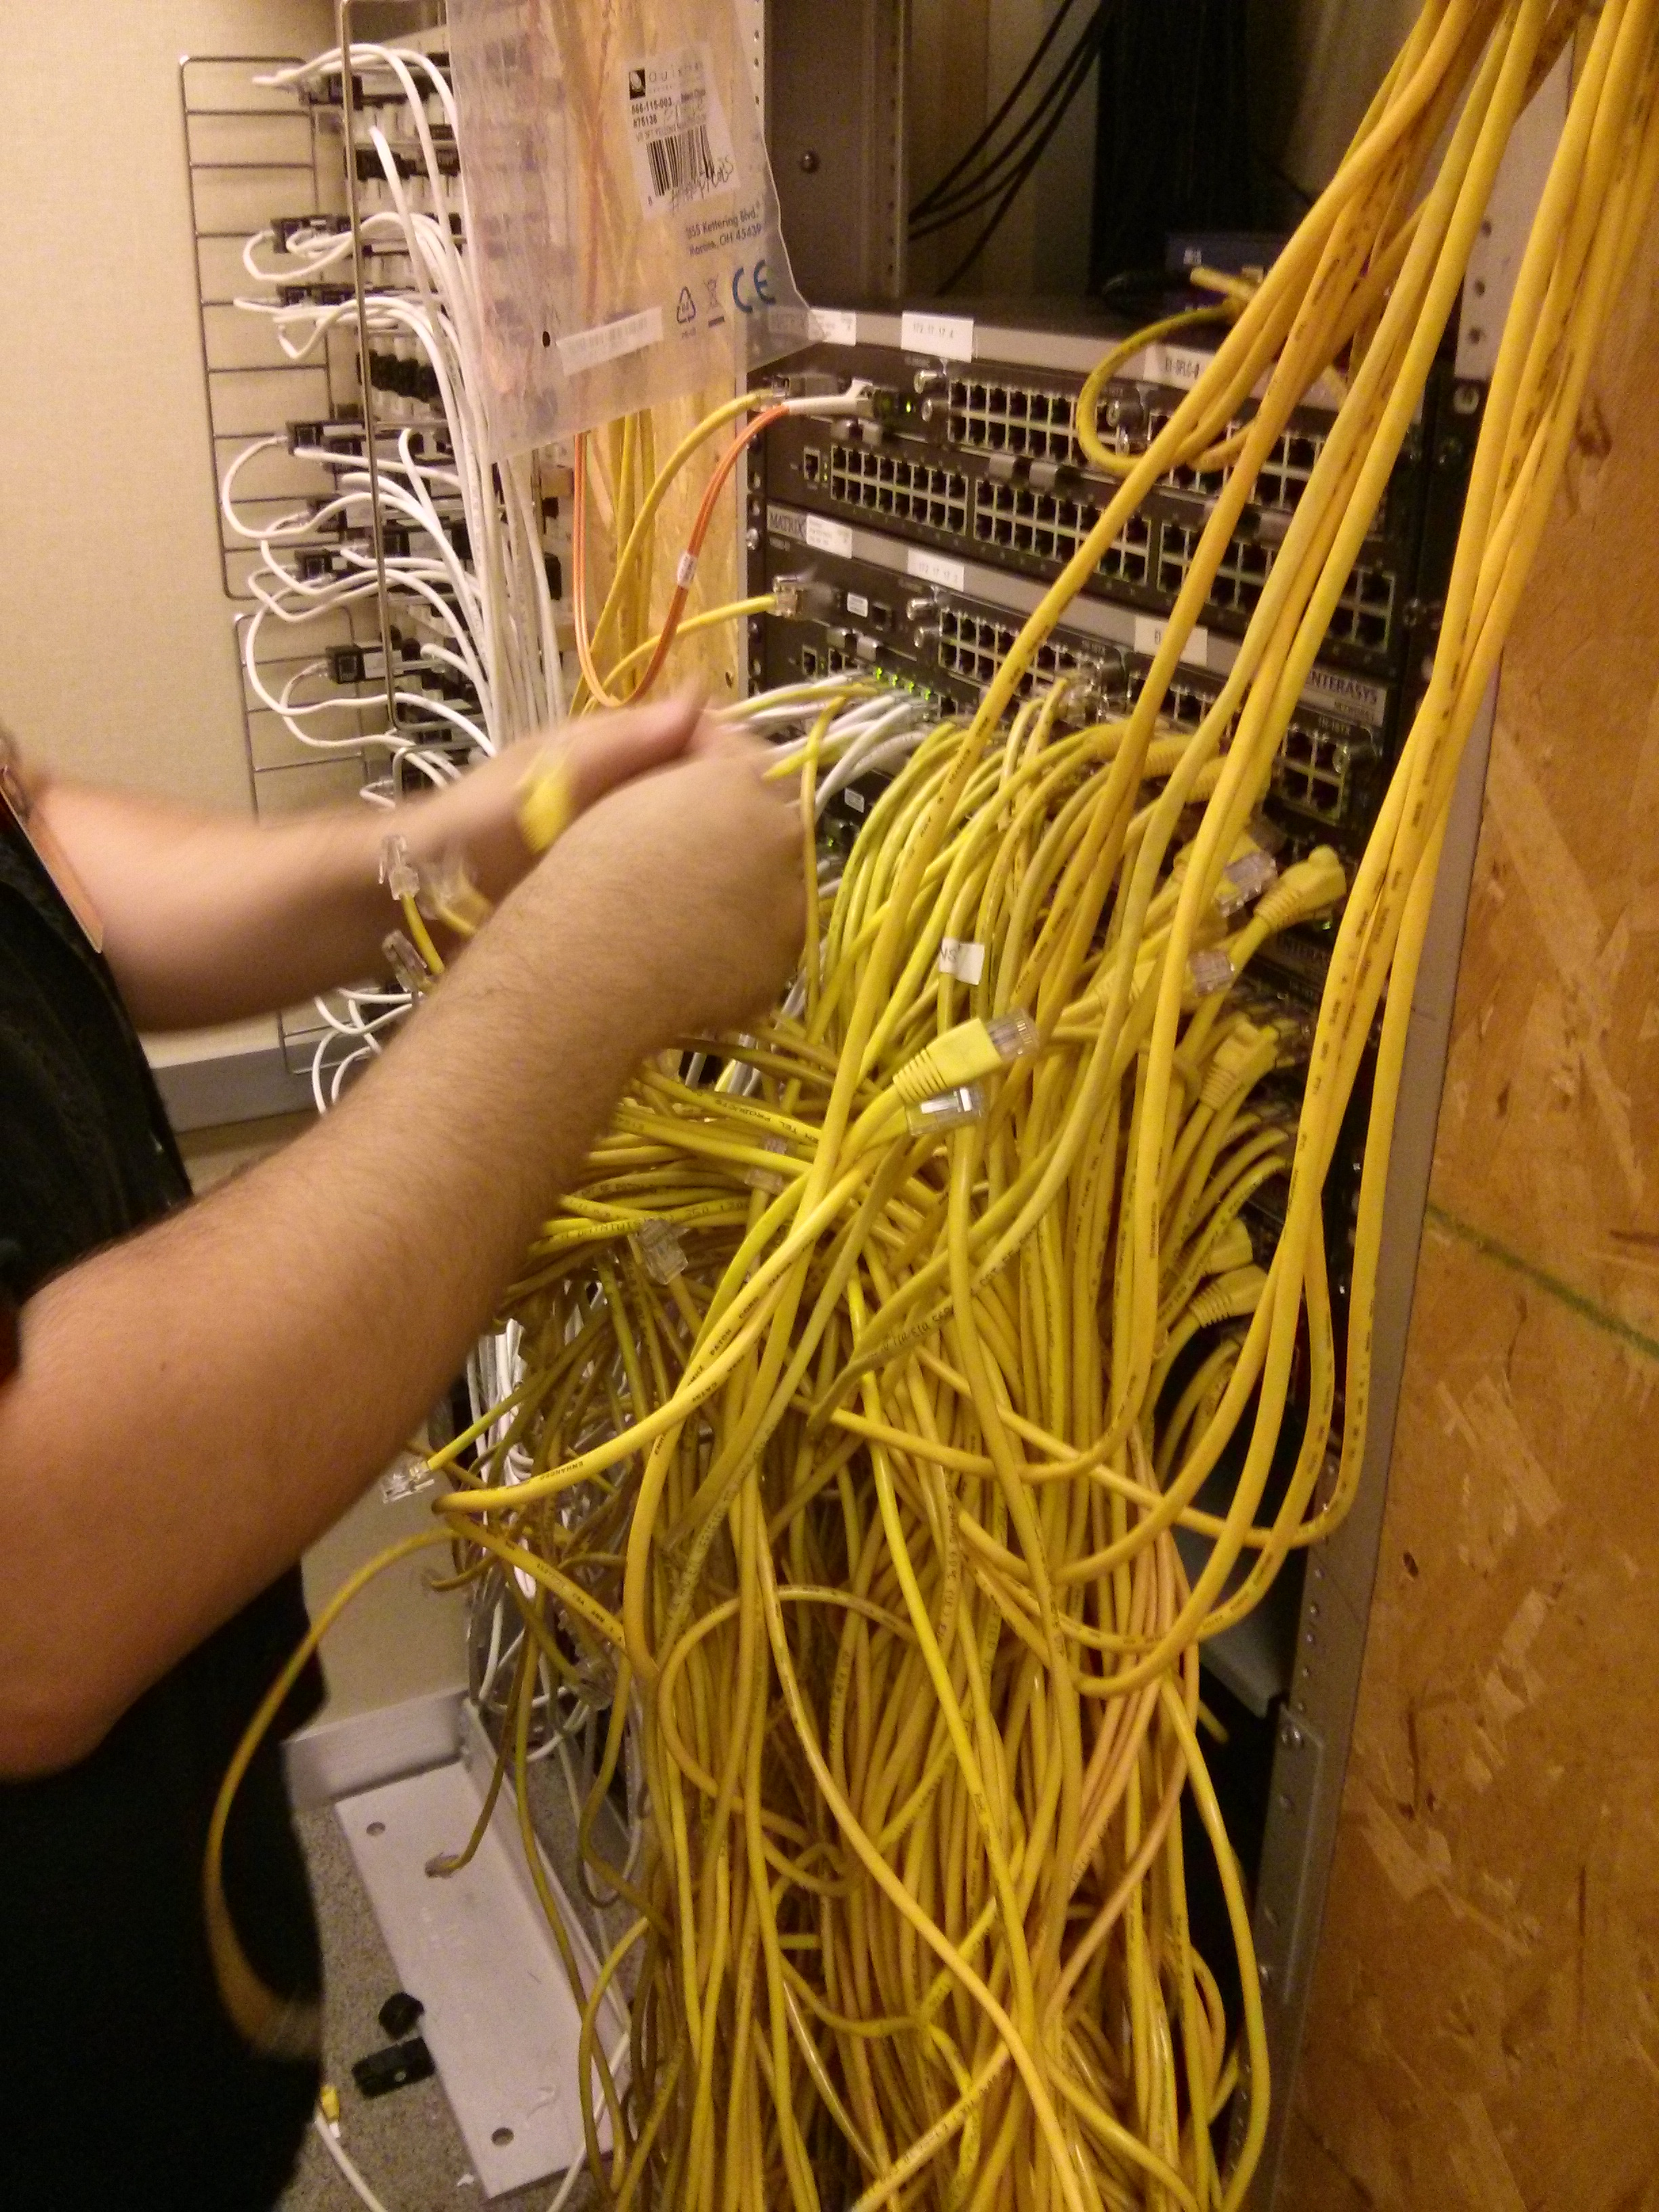 Network Administrator working in networking closet